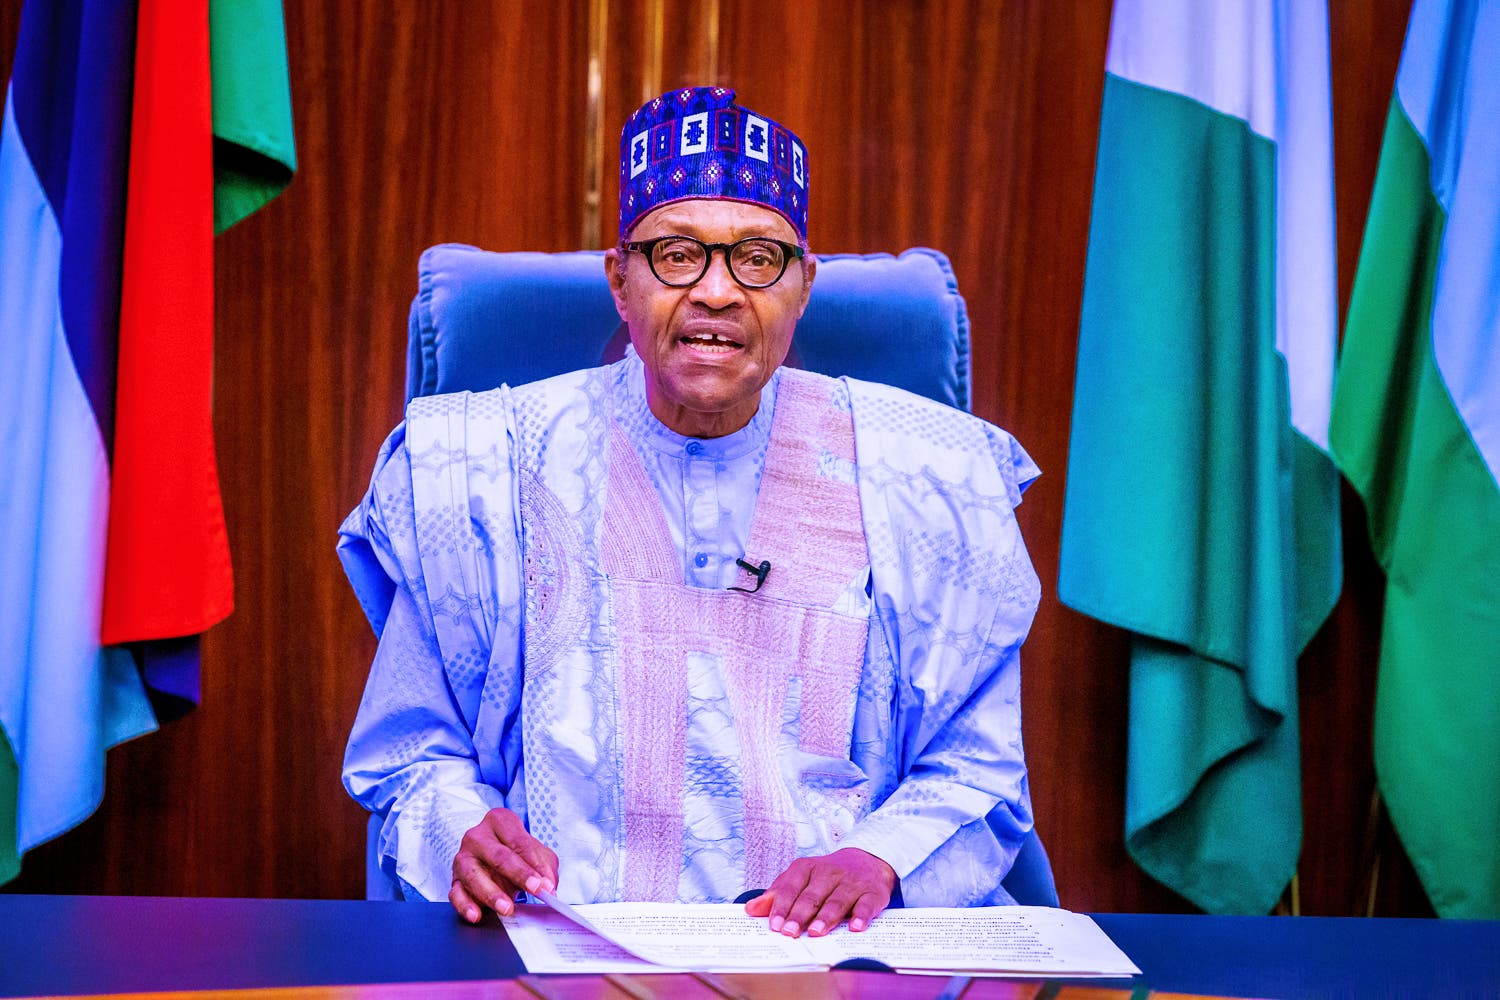 Be patient with any law you've misgiving about, Buhari tells Nigerians